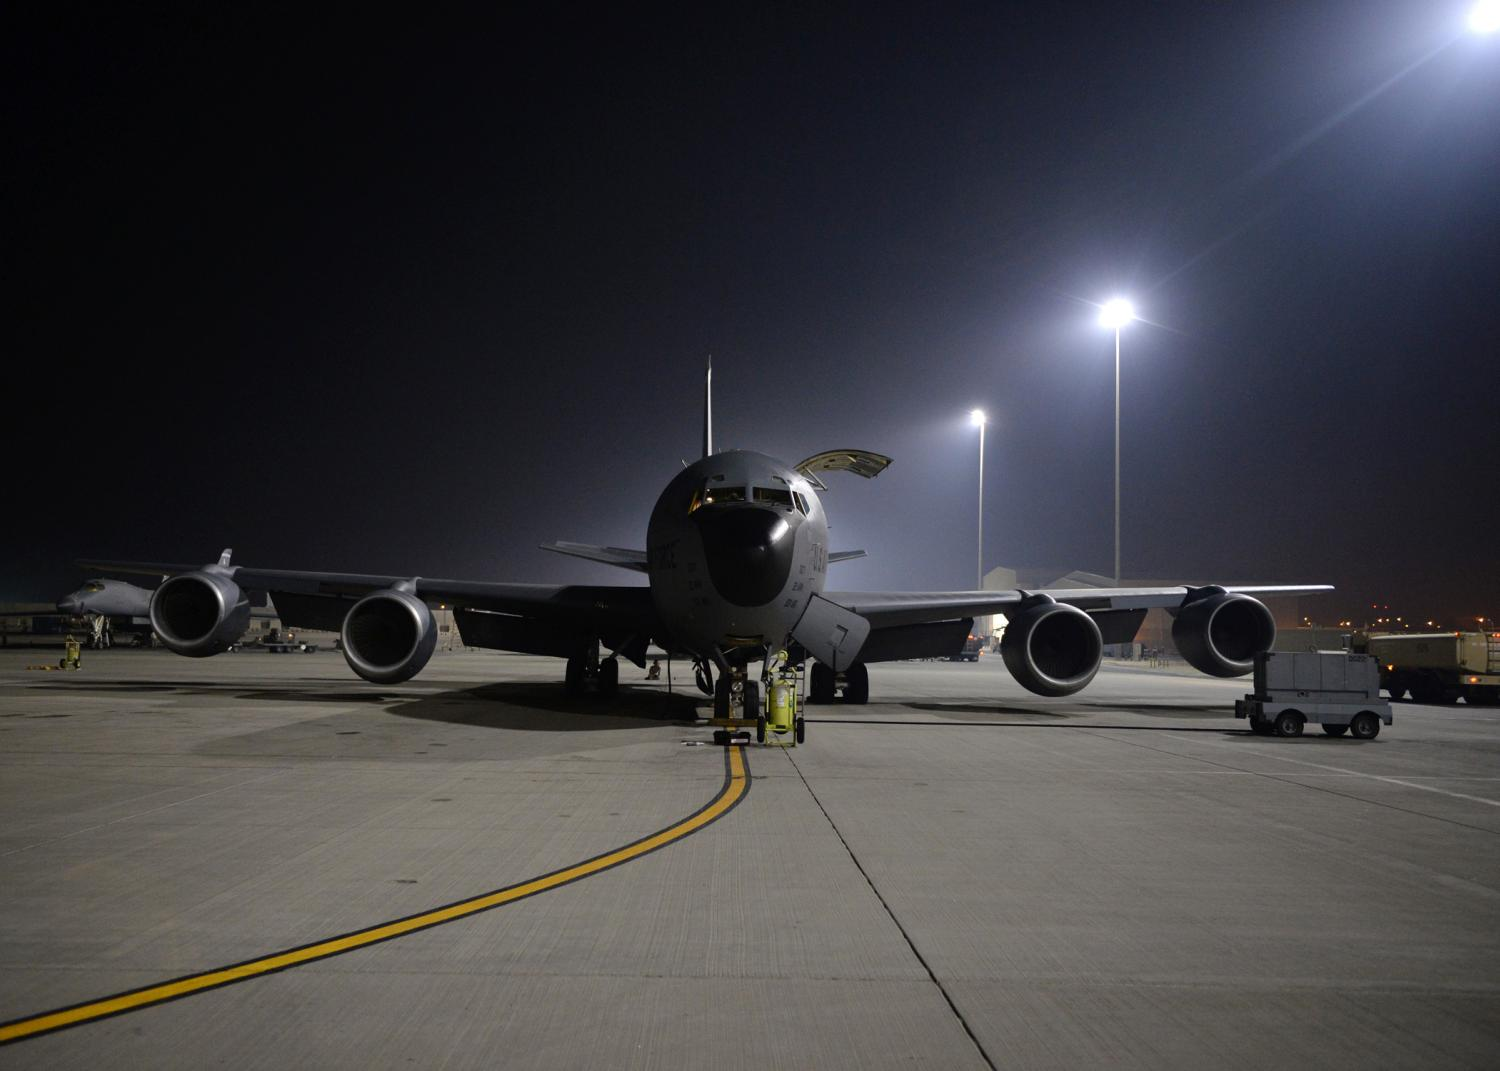 Fox analyst: Airstrikes in Syria conducted at night to